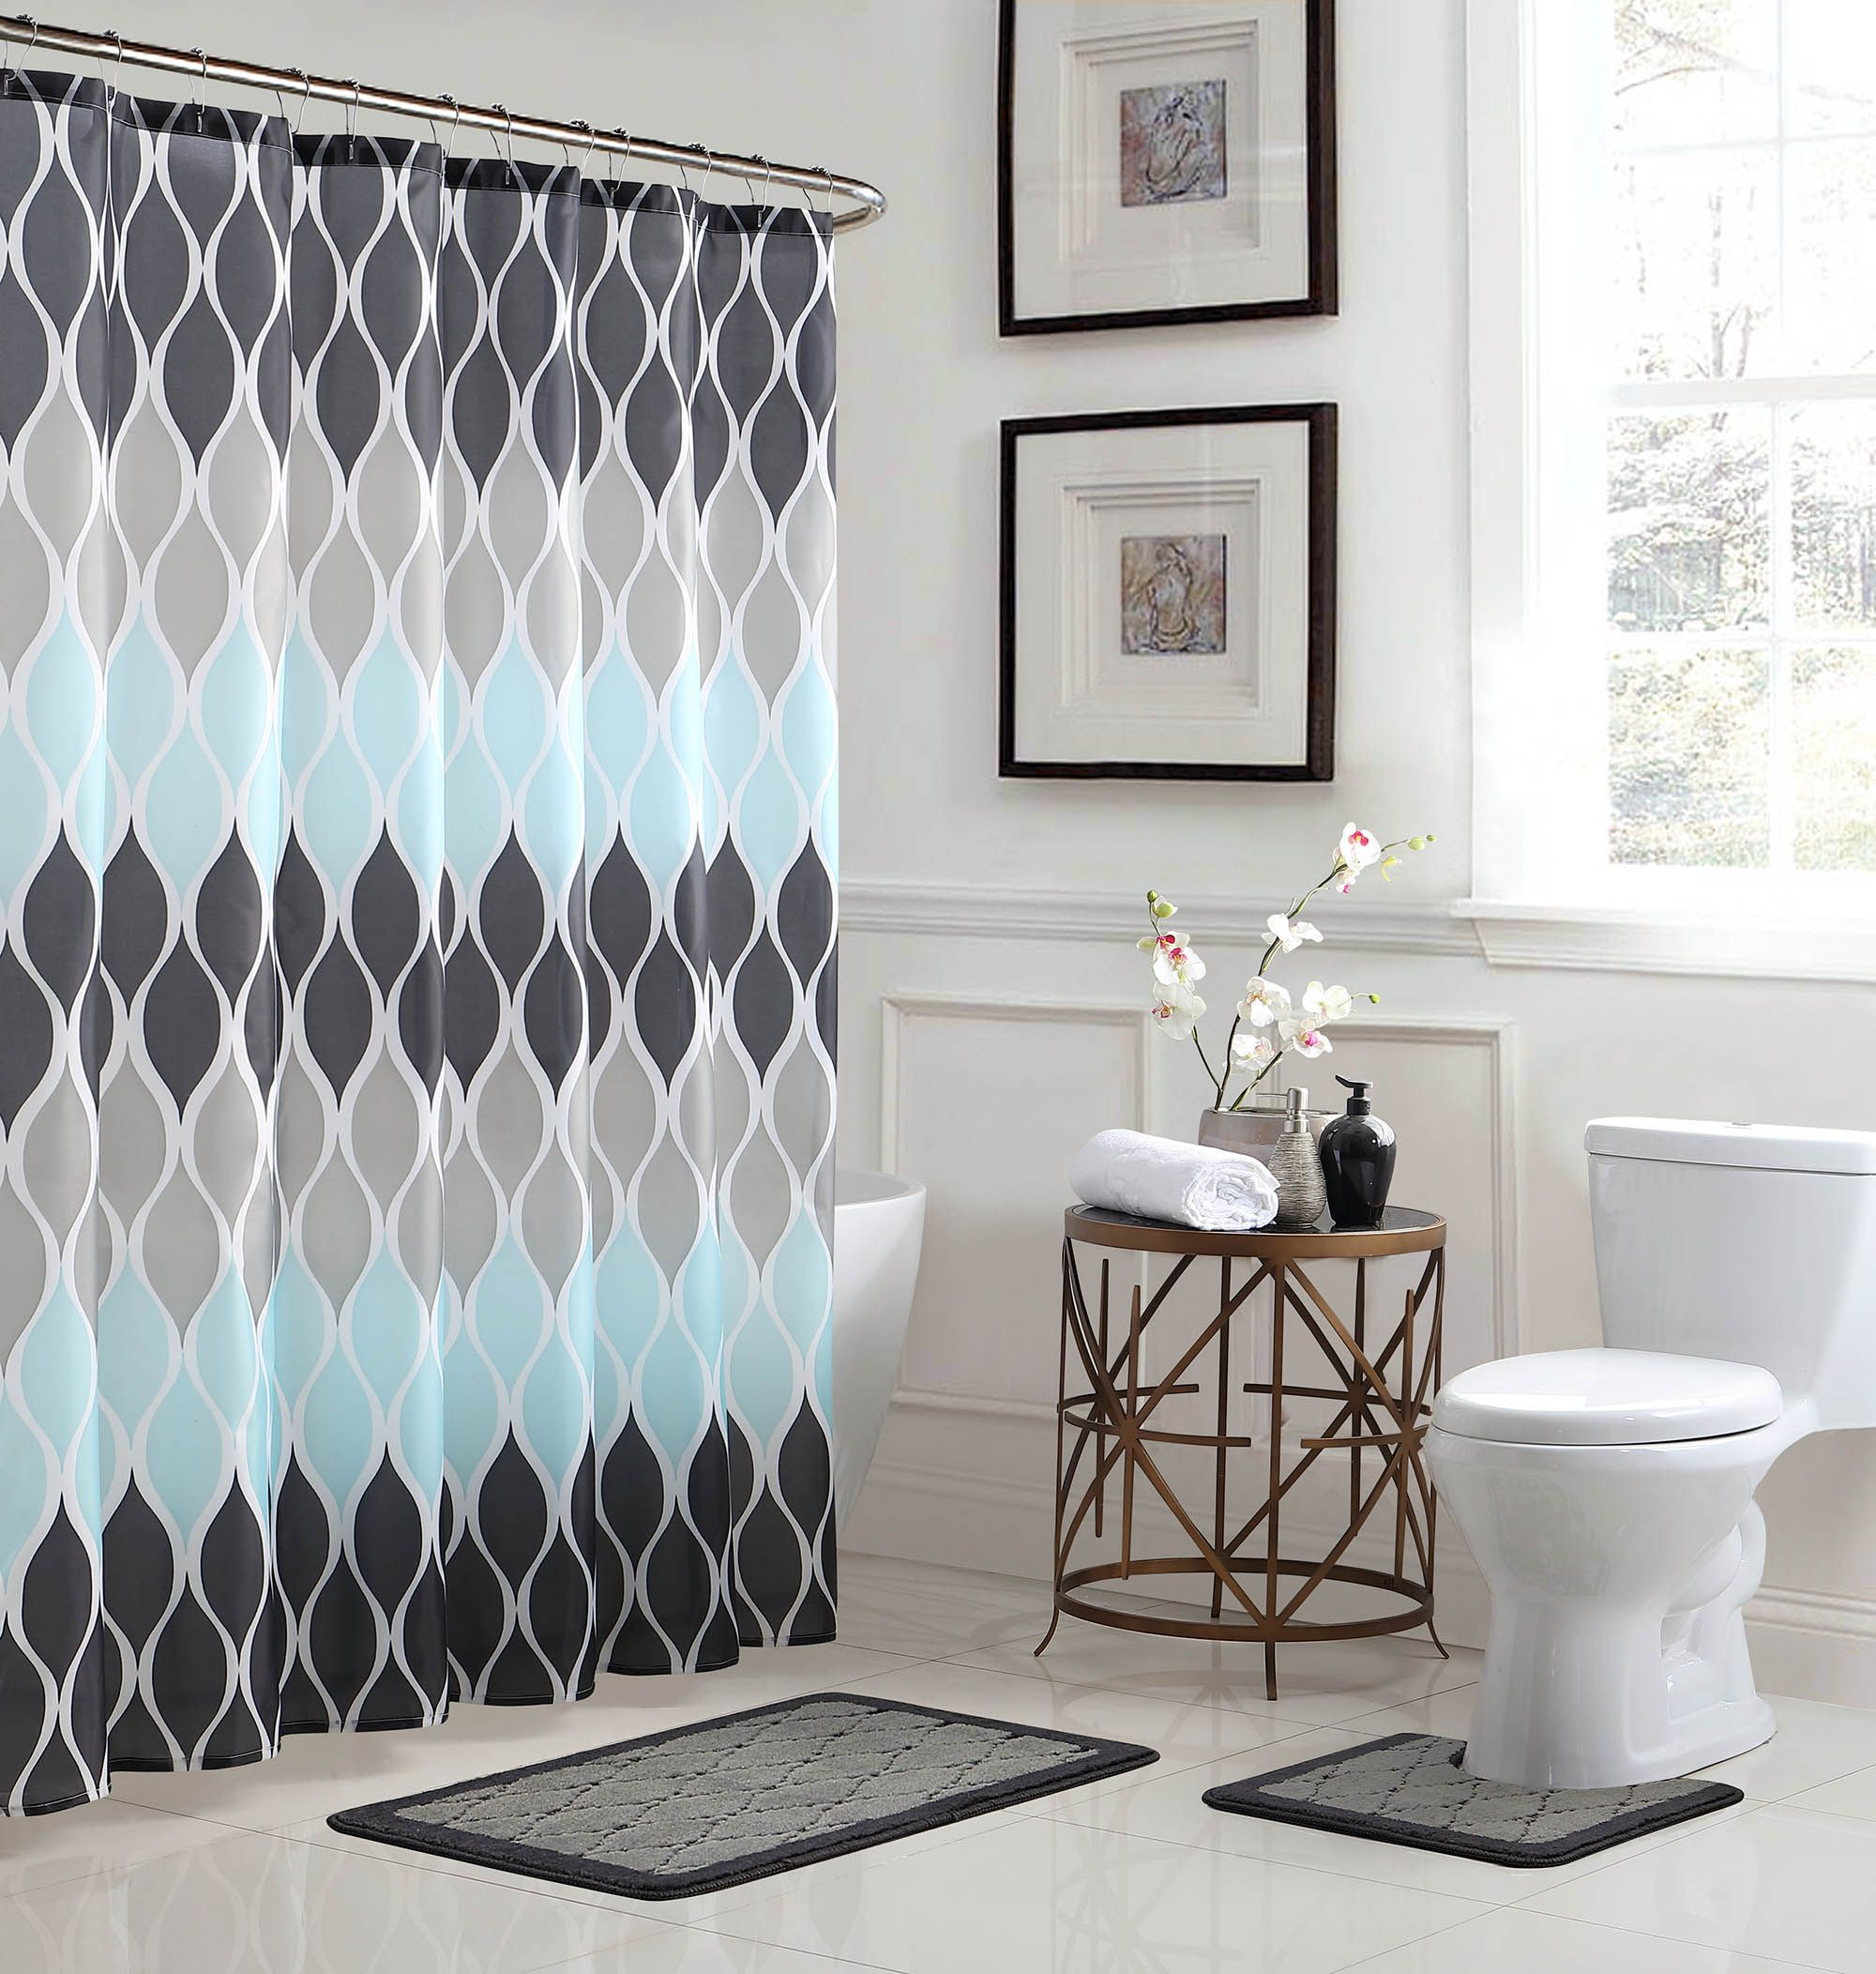 Home Blue Shower Curtains Bathroom Accessories Sets Shower